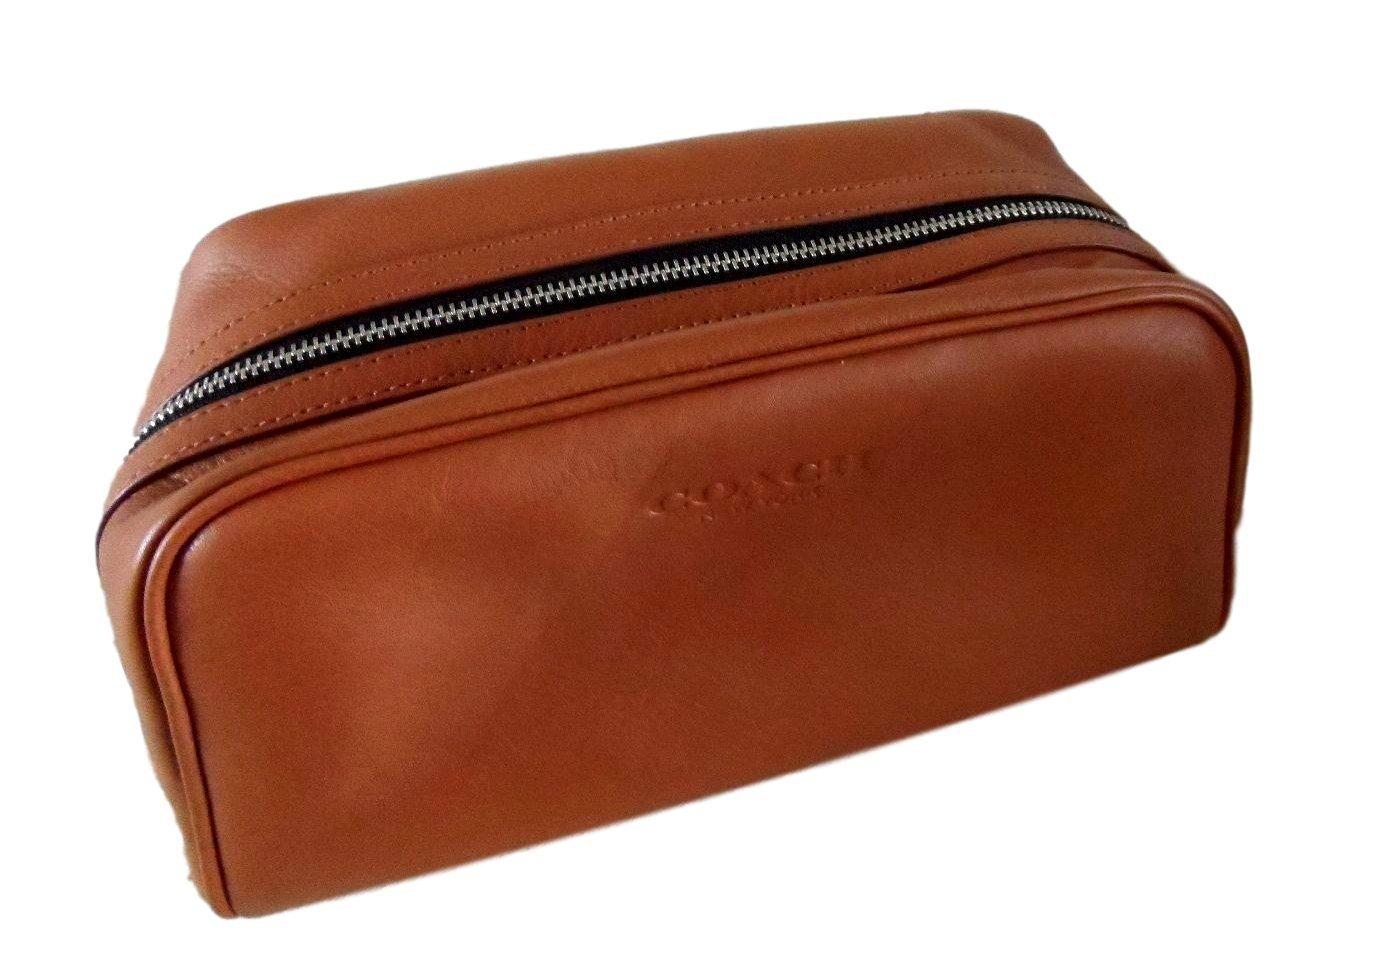 68f646d97497 ... spain coach leather weekend travel dopp toiletries kit in saddle tan  93445 8ca0a 8d10c